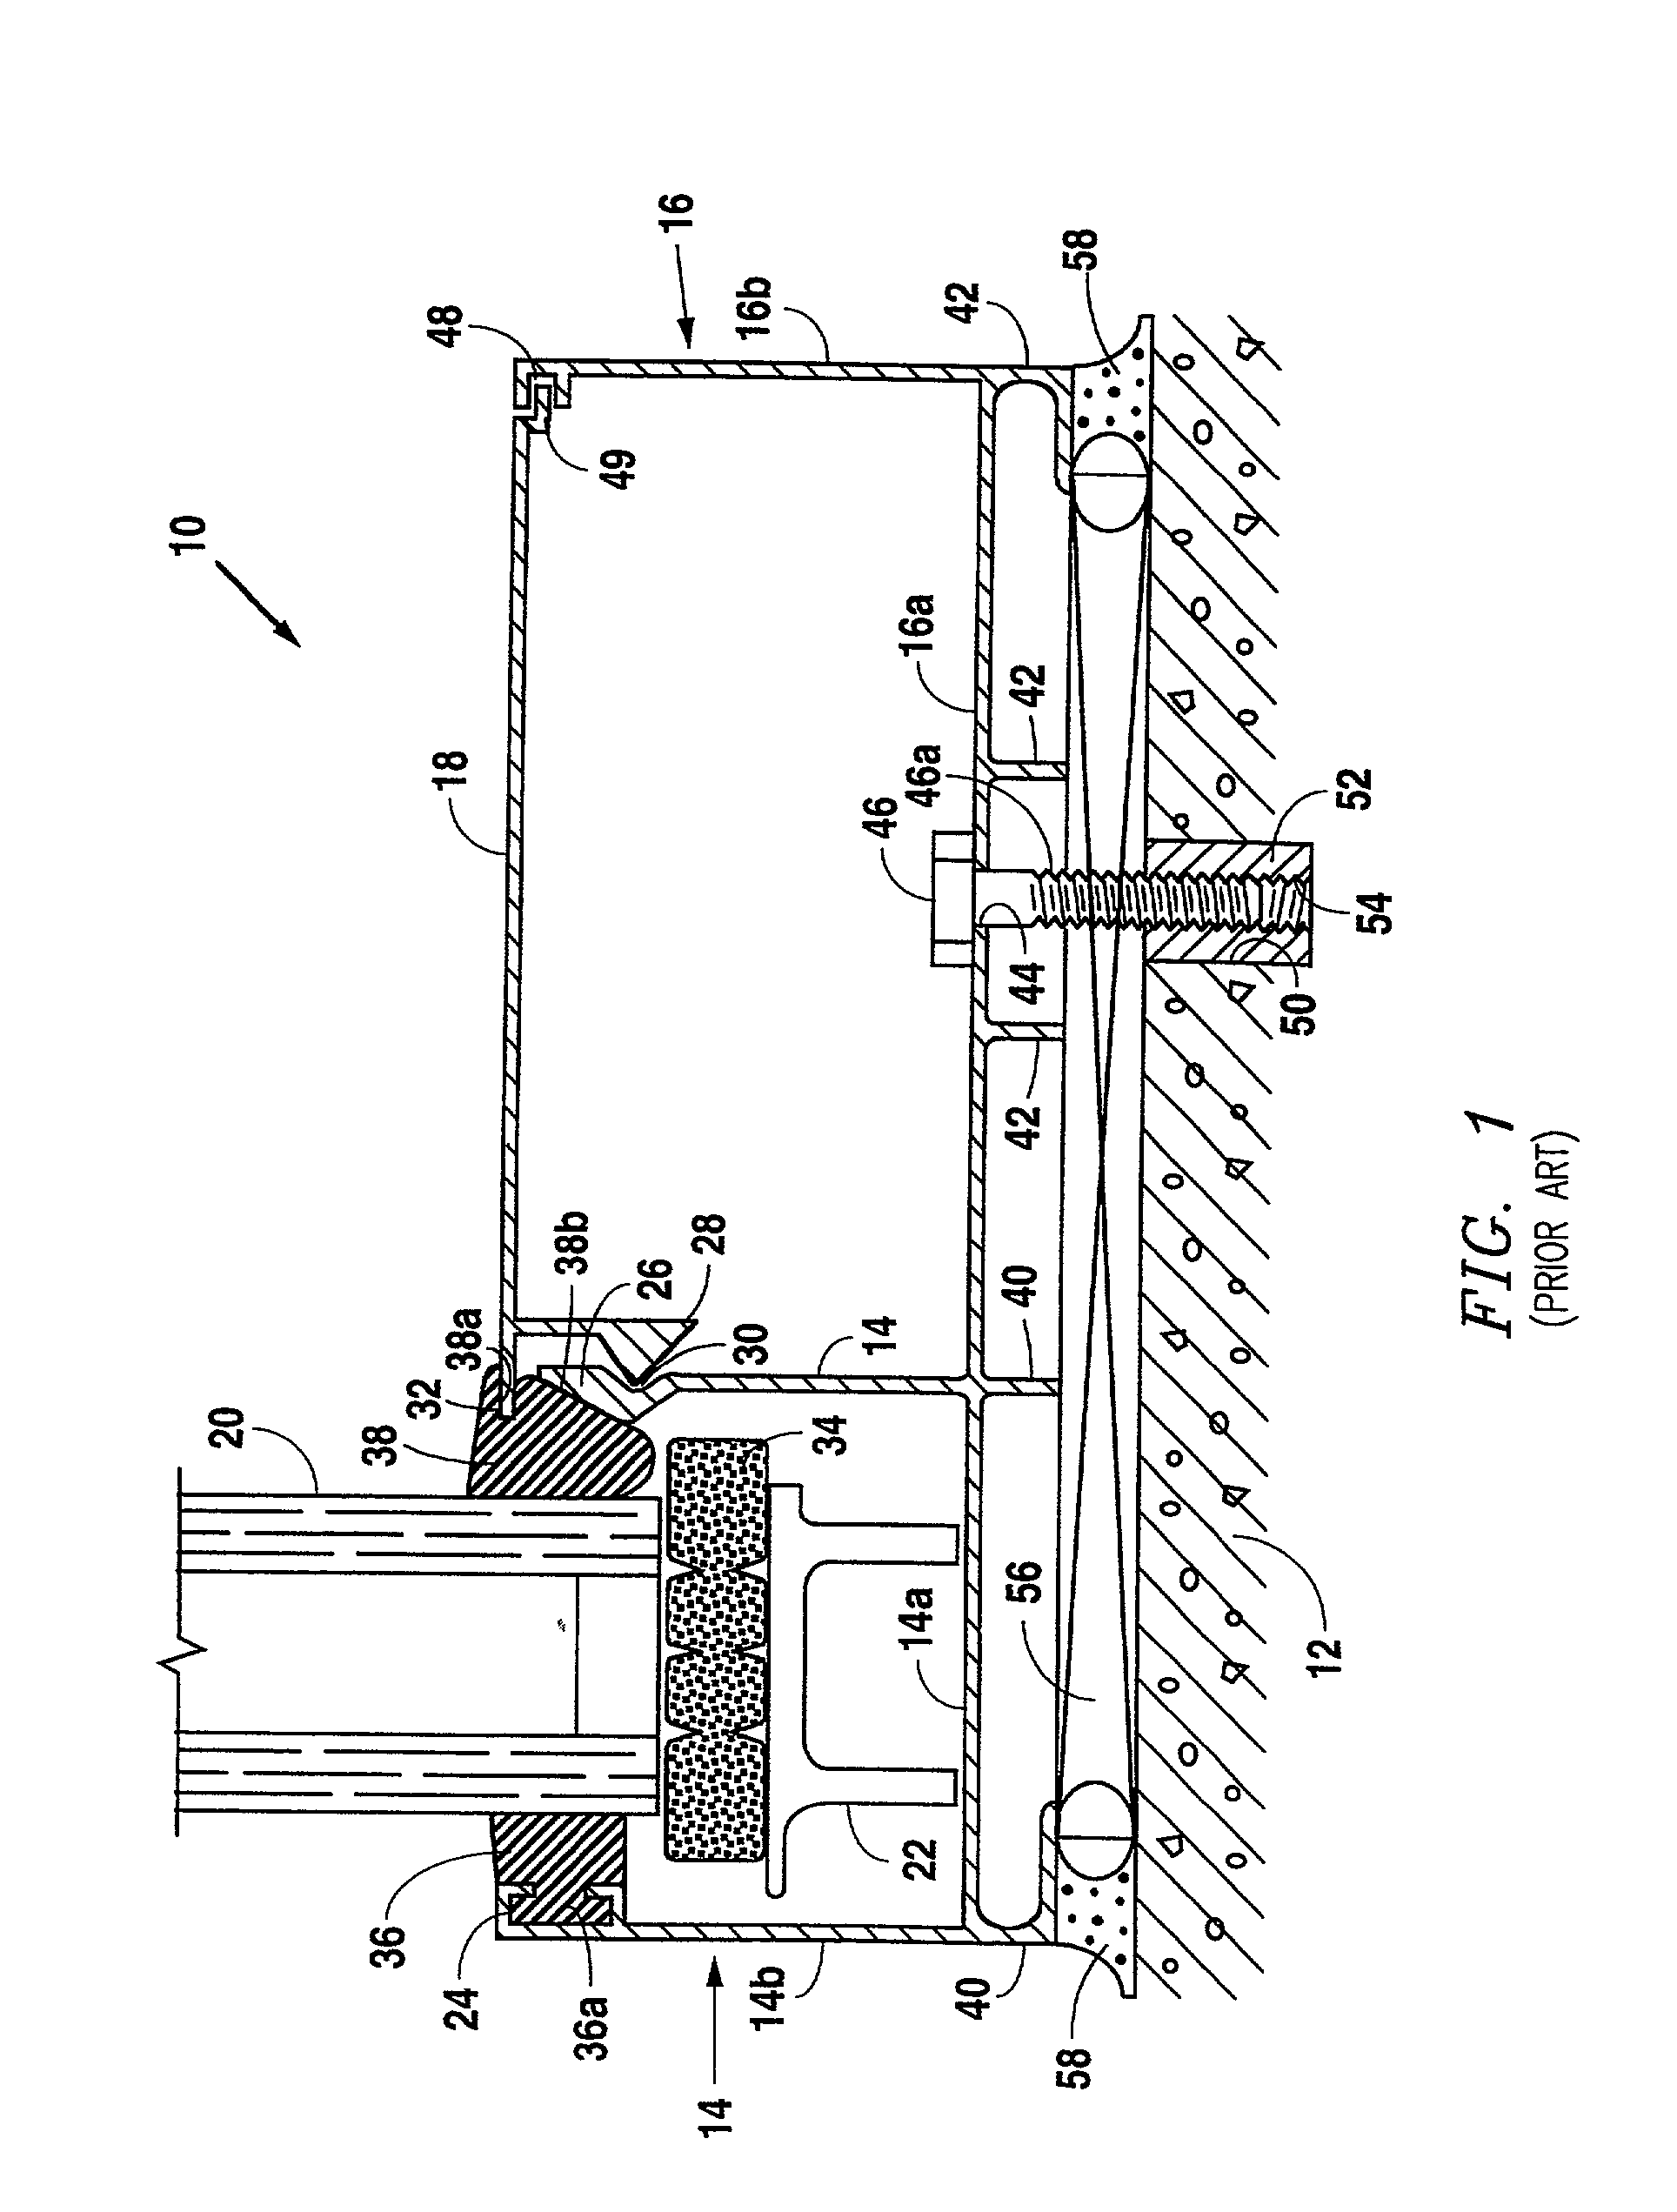 Curtain Wall Assembly : Patent us  building curtain wall with sill